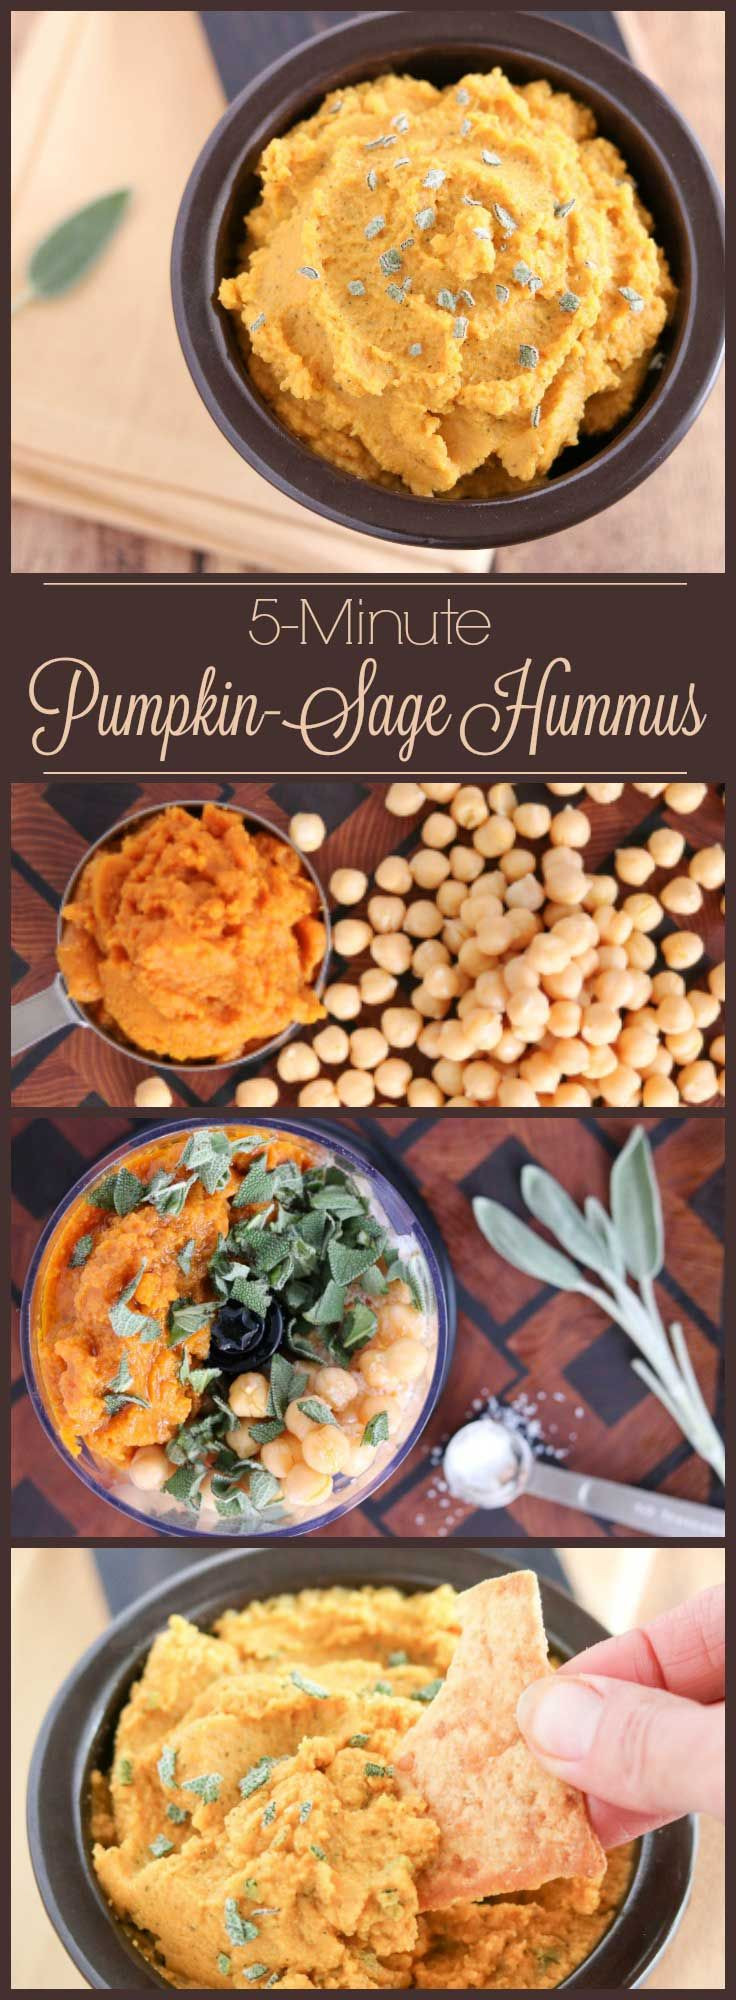 Thanksgiving Pumpkin Recipes  Thanksgiving Appetizer 5 ingre nts ready in 5 minutes